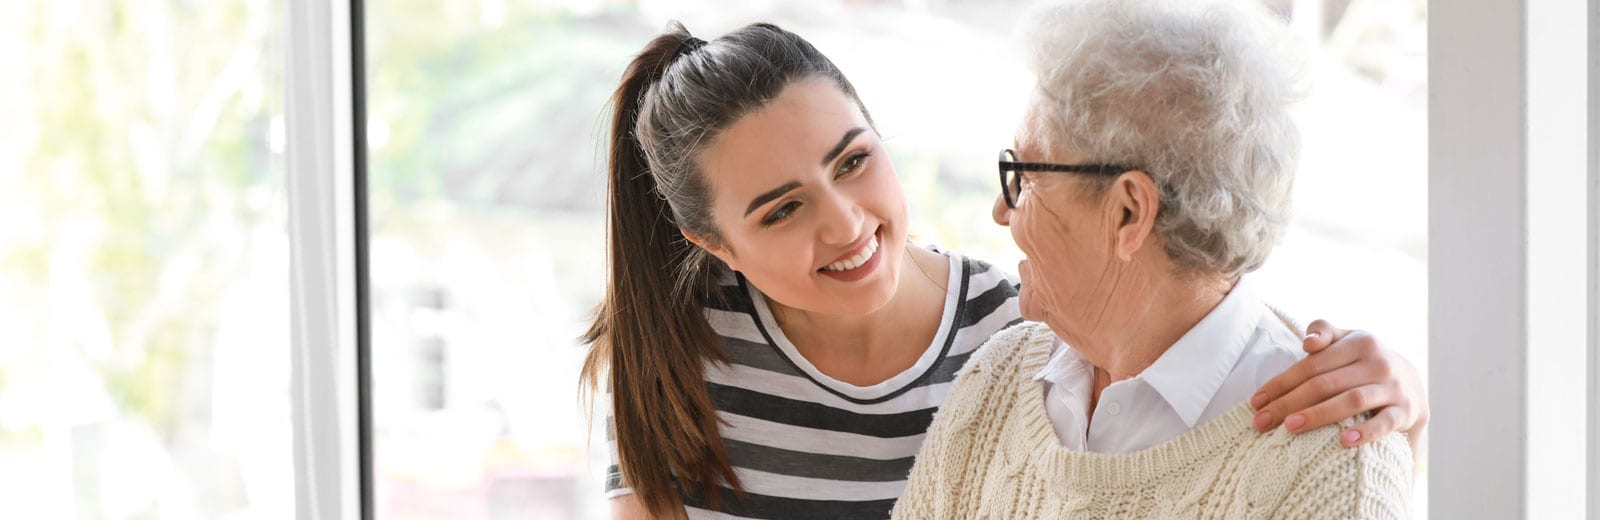 How to Improve Quality of Life for Someone With Dementia